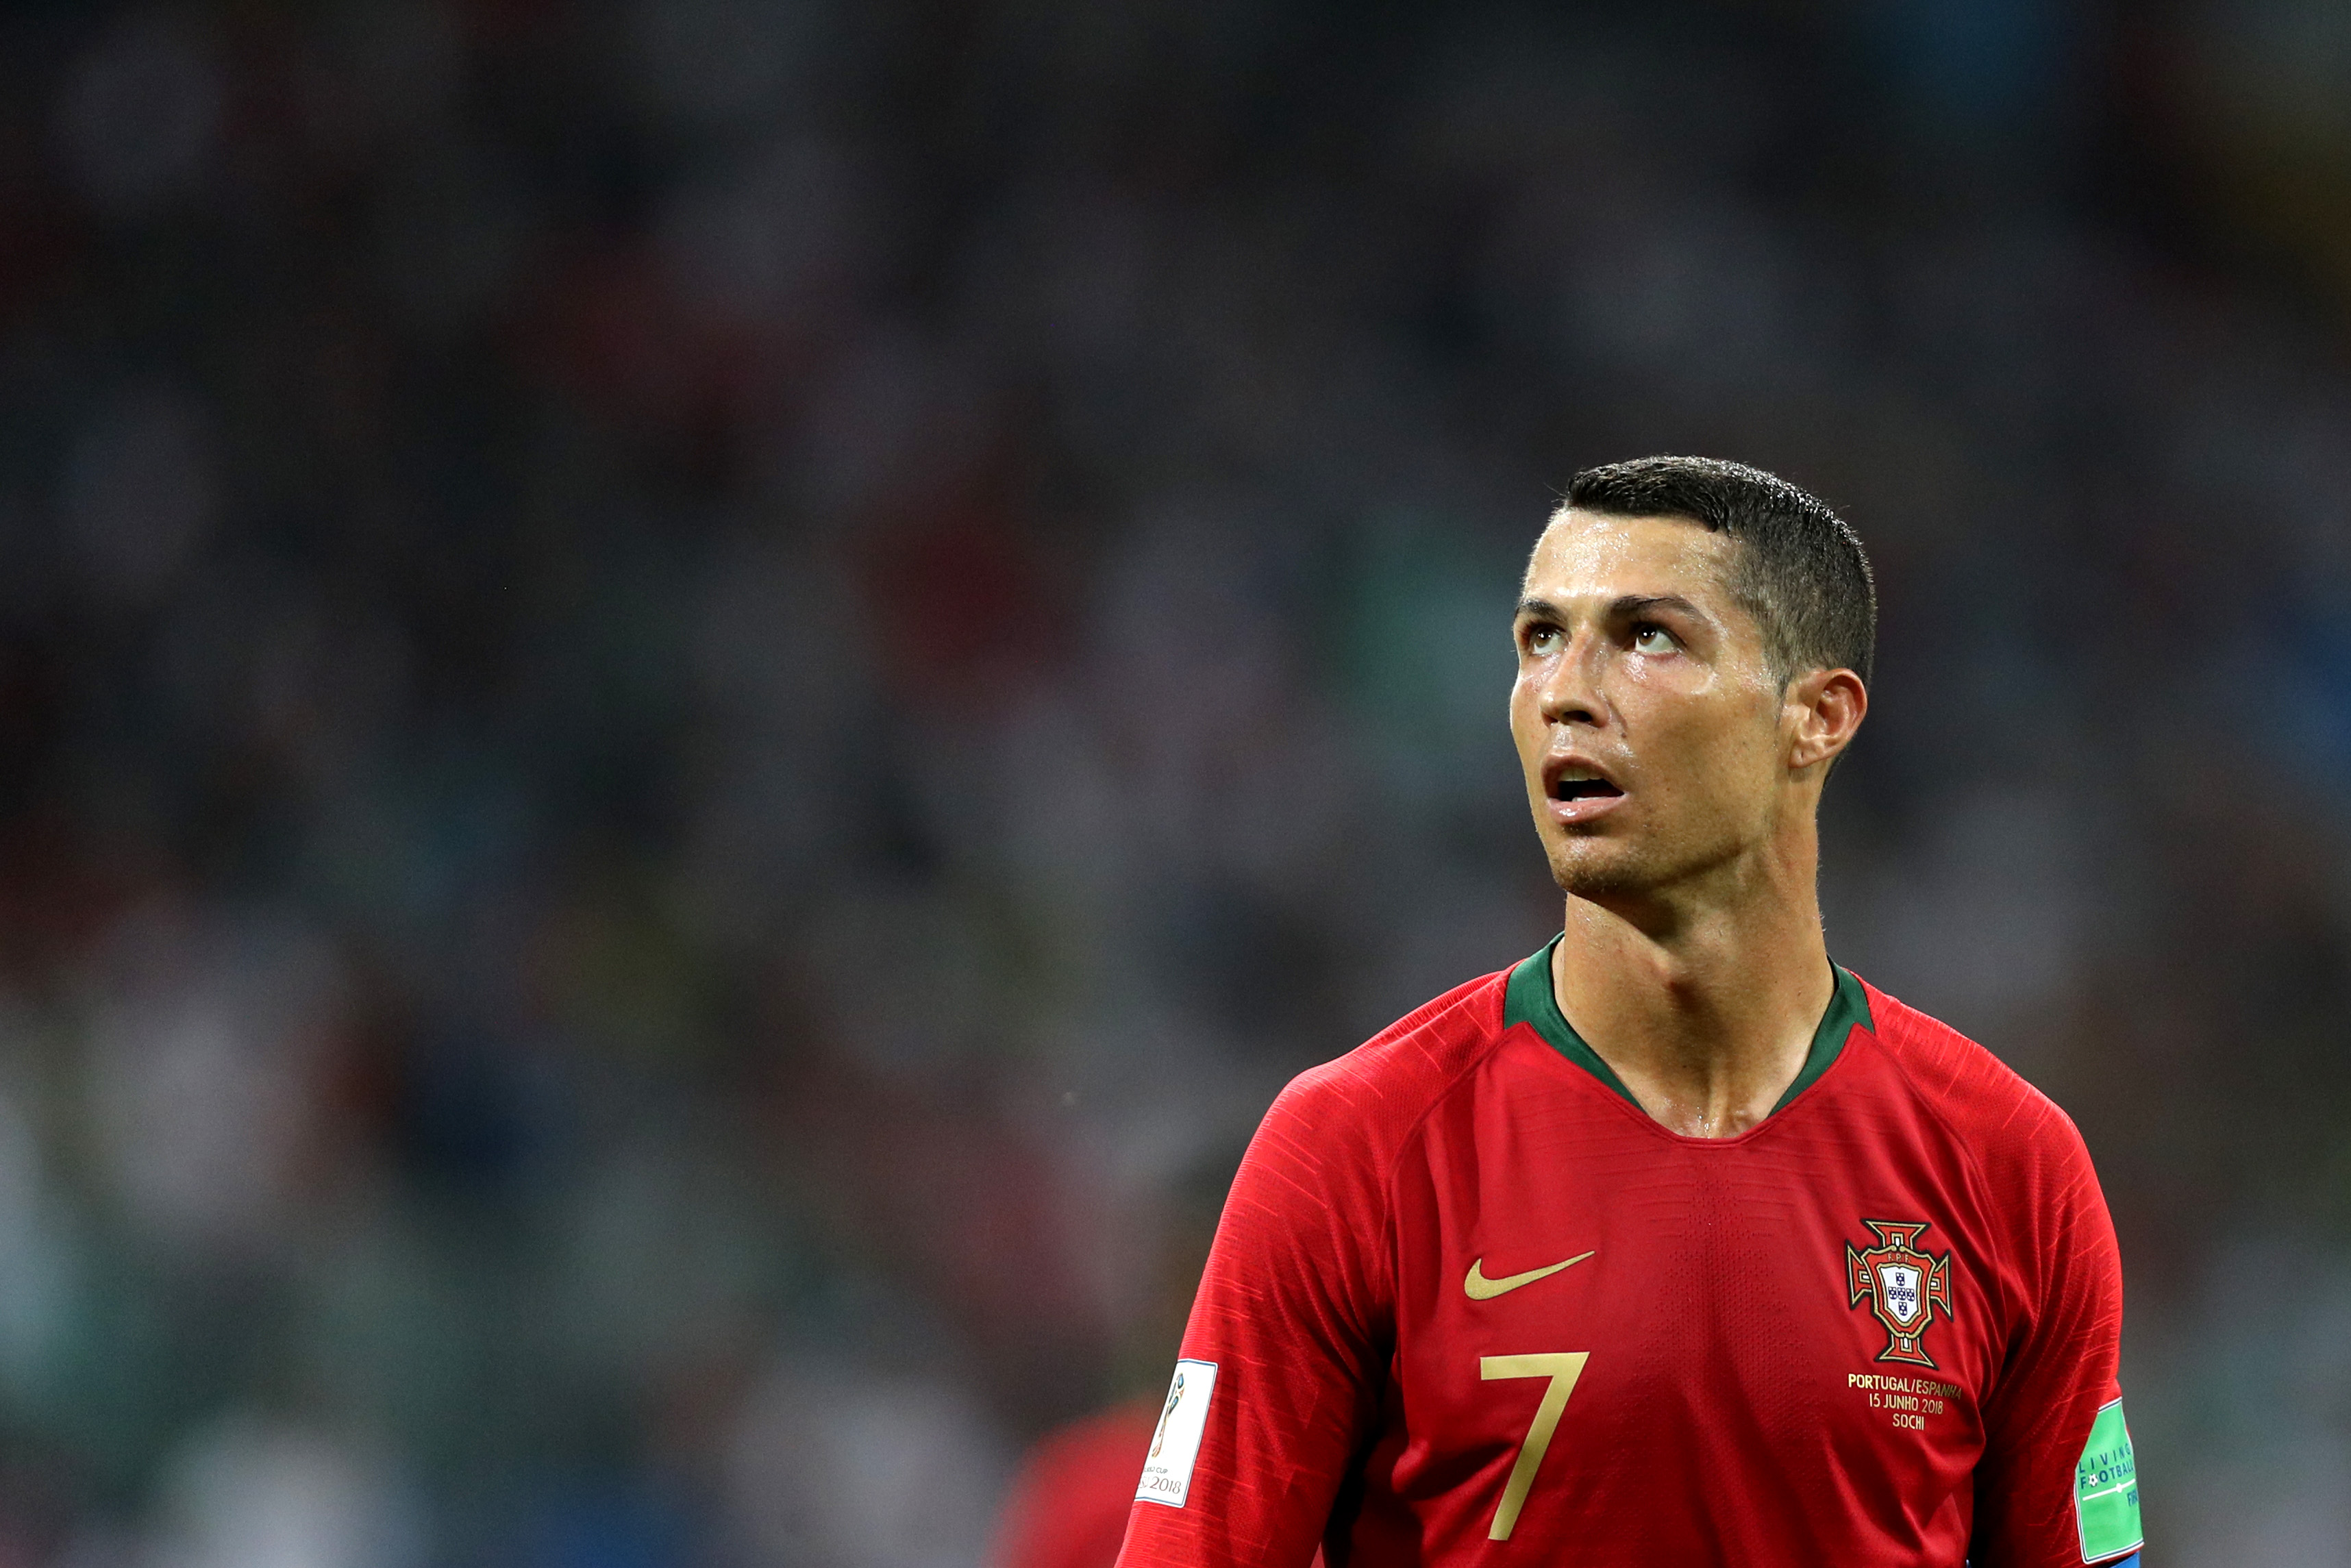 Cristiano Ronaldo Spain Portugal World Cup 2018